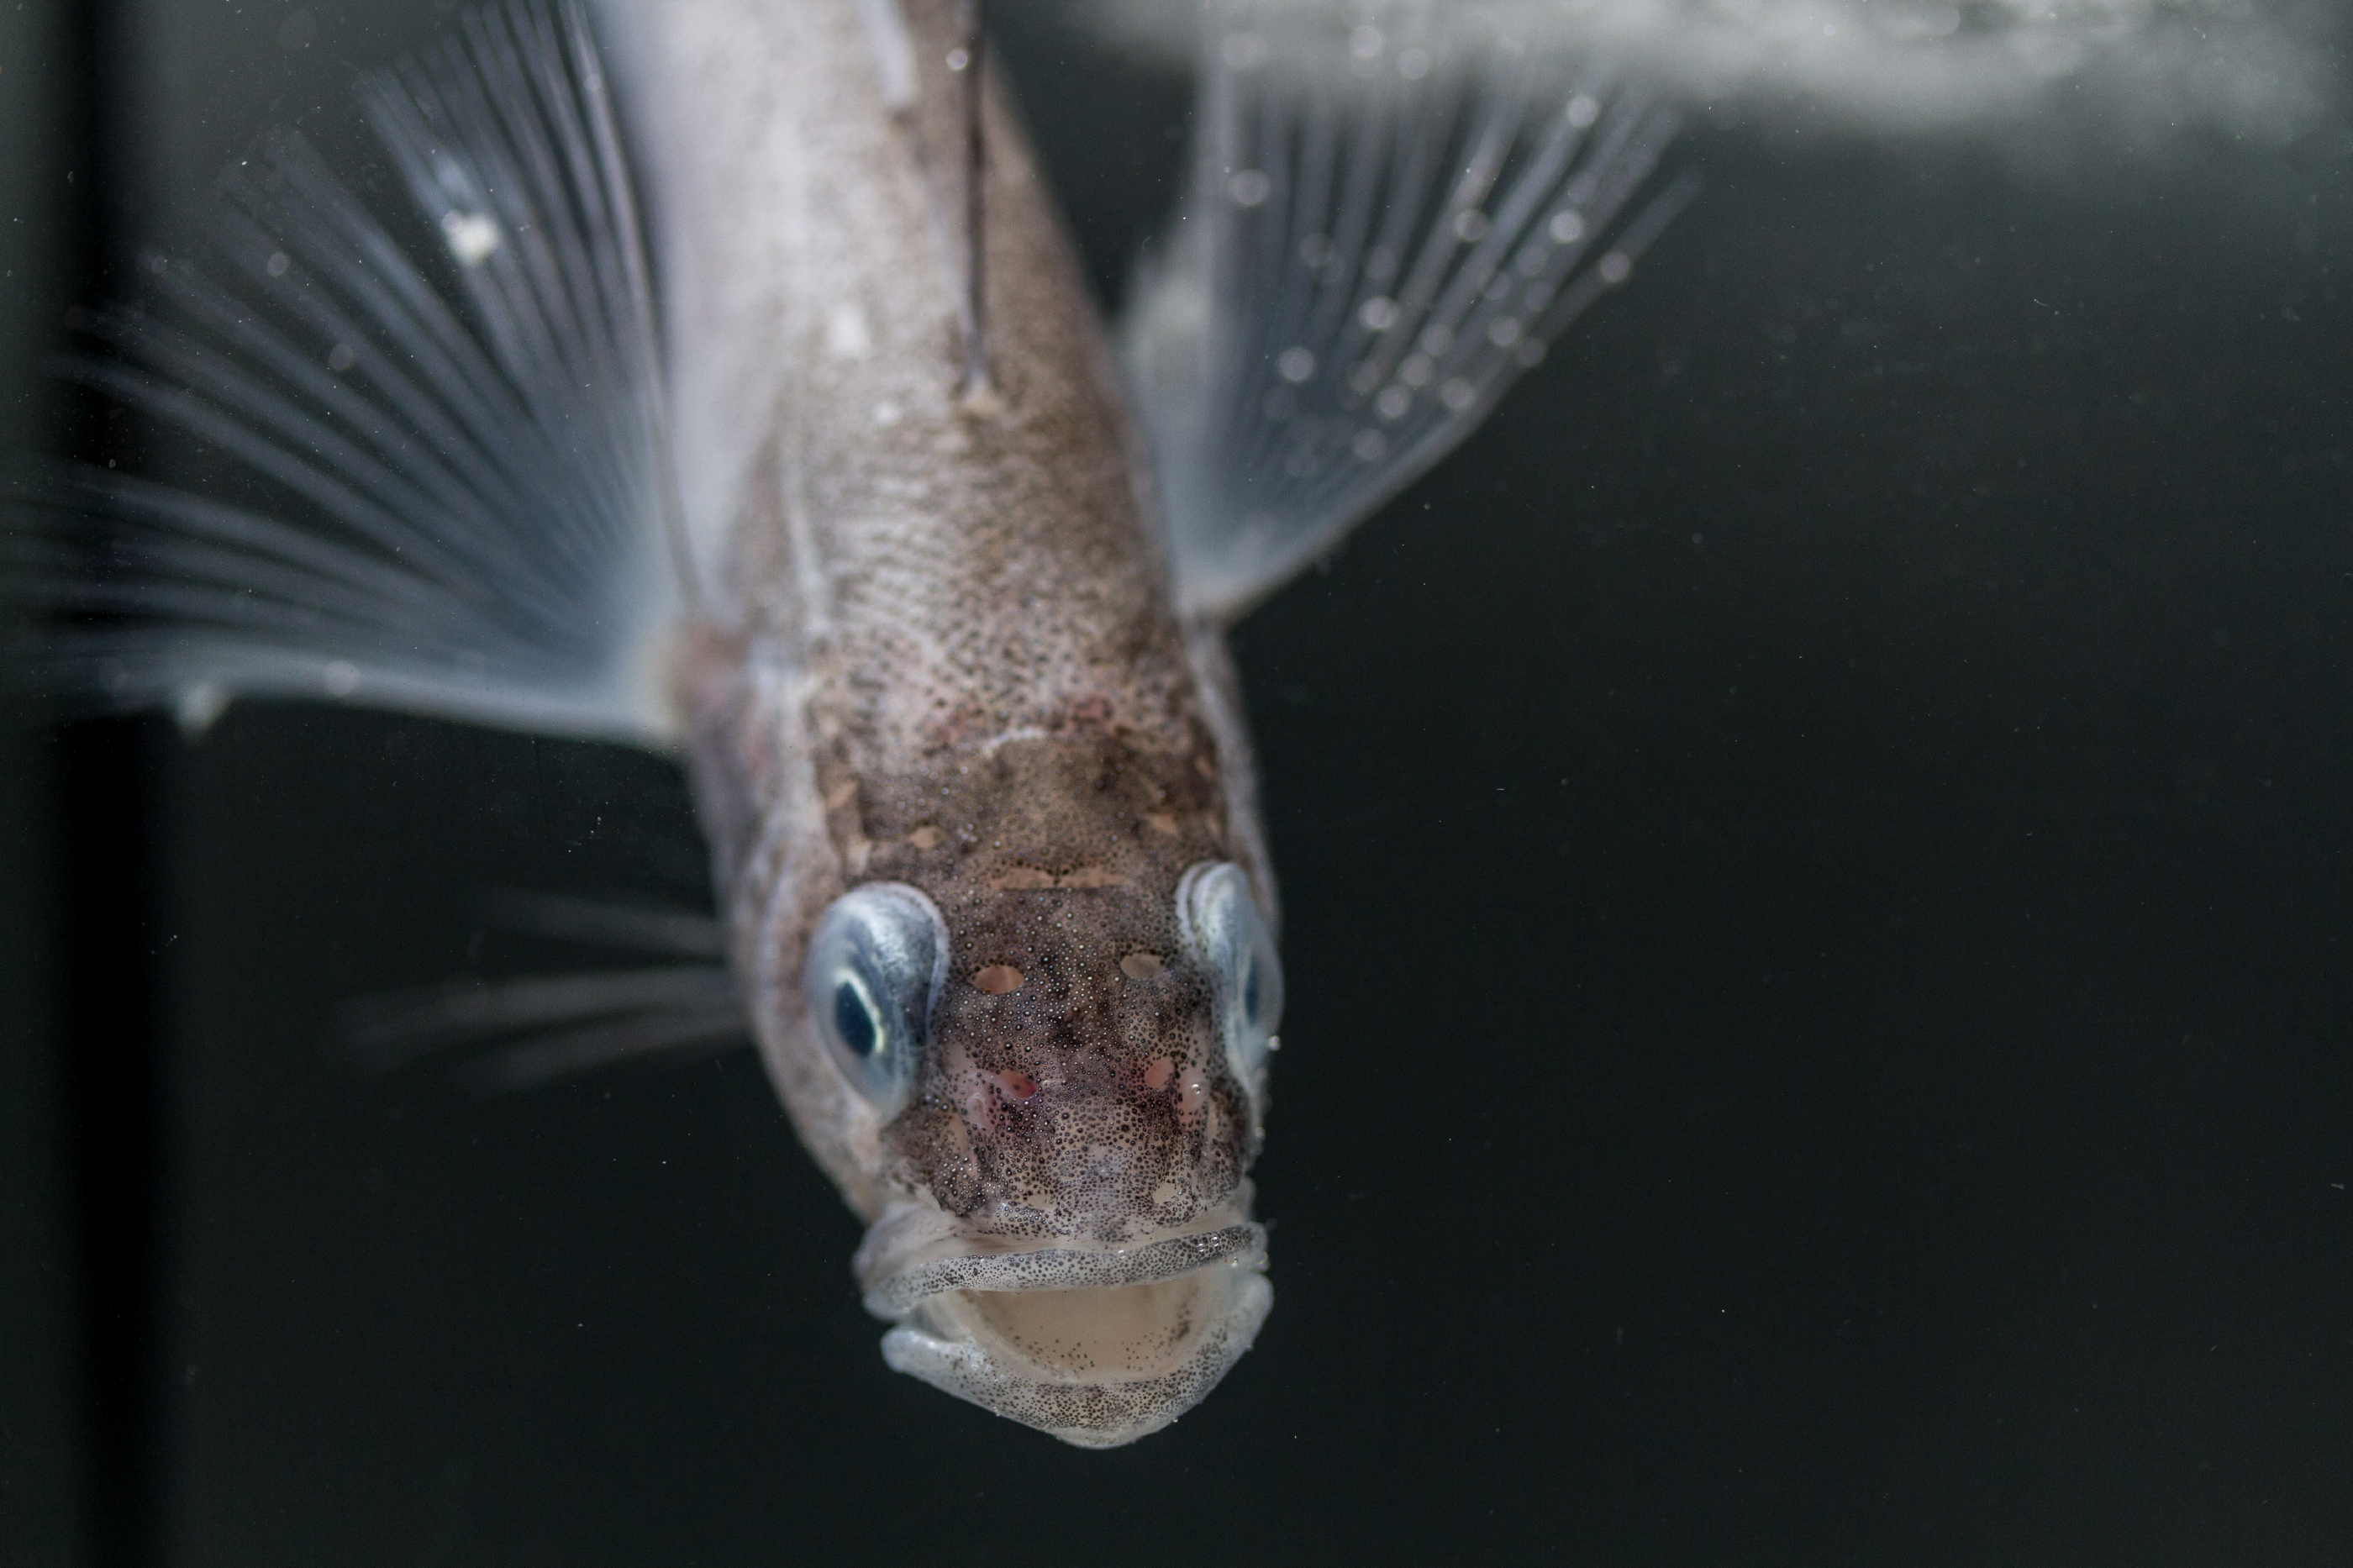 Longfin icedevil (Aethotaxis mitopteryx), photo taken in the aquarium on board the research vessel Polarstern.